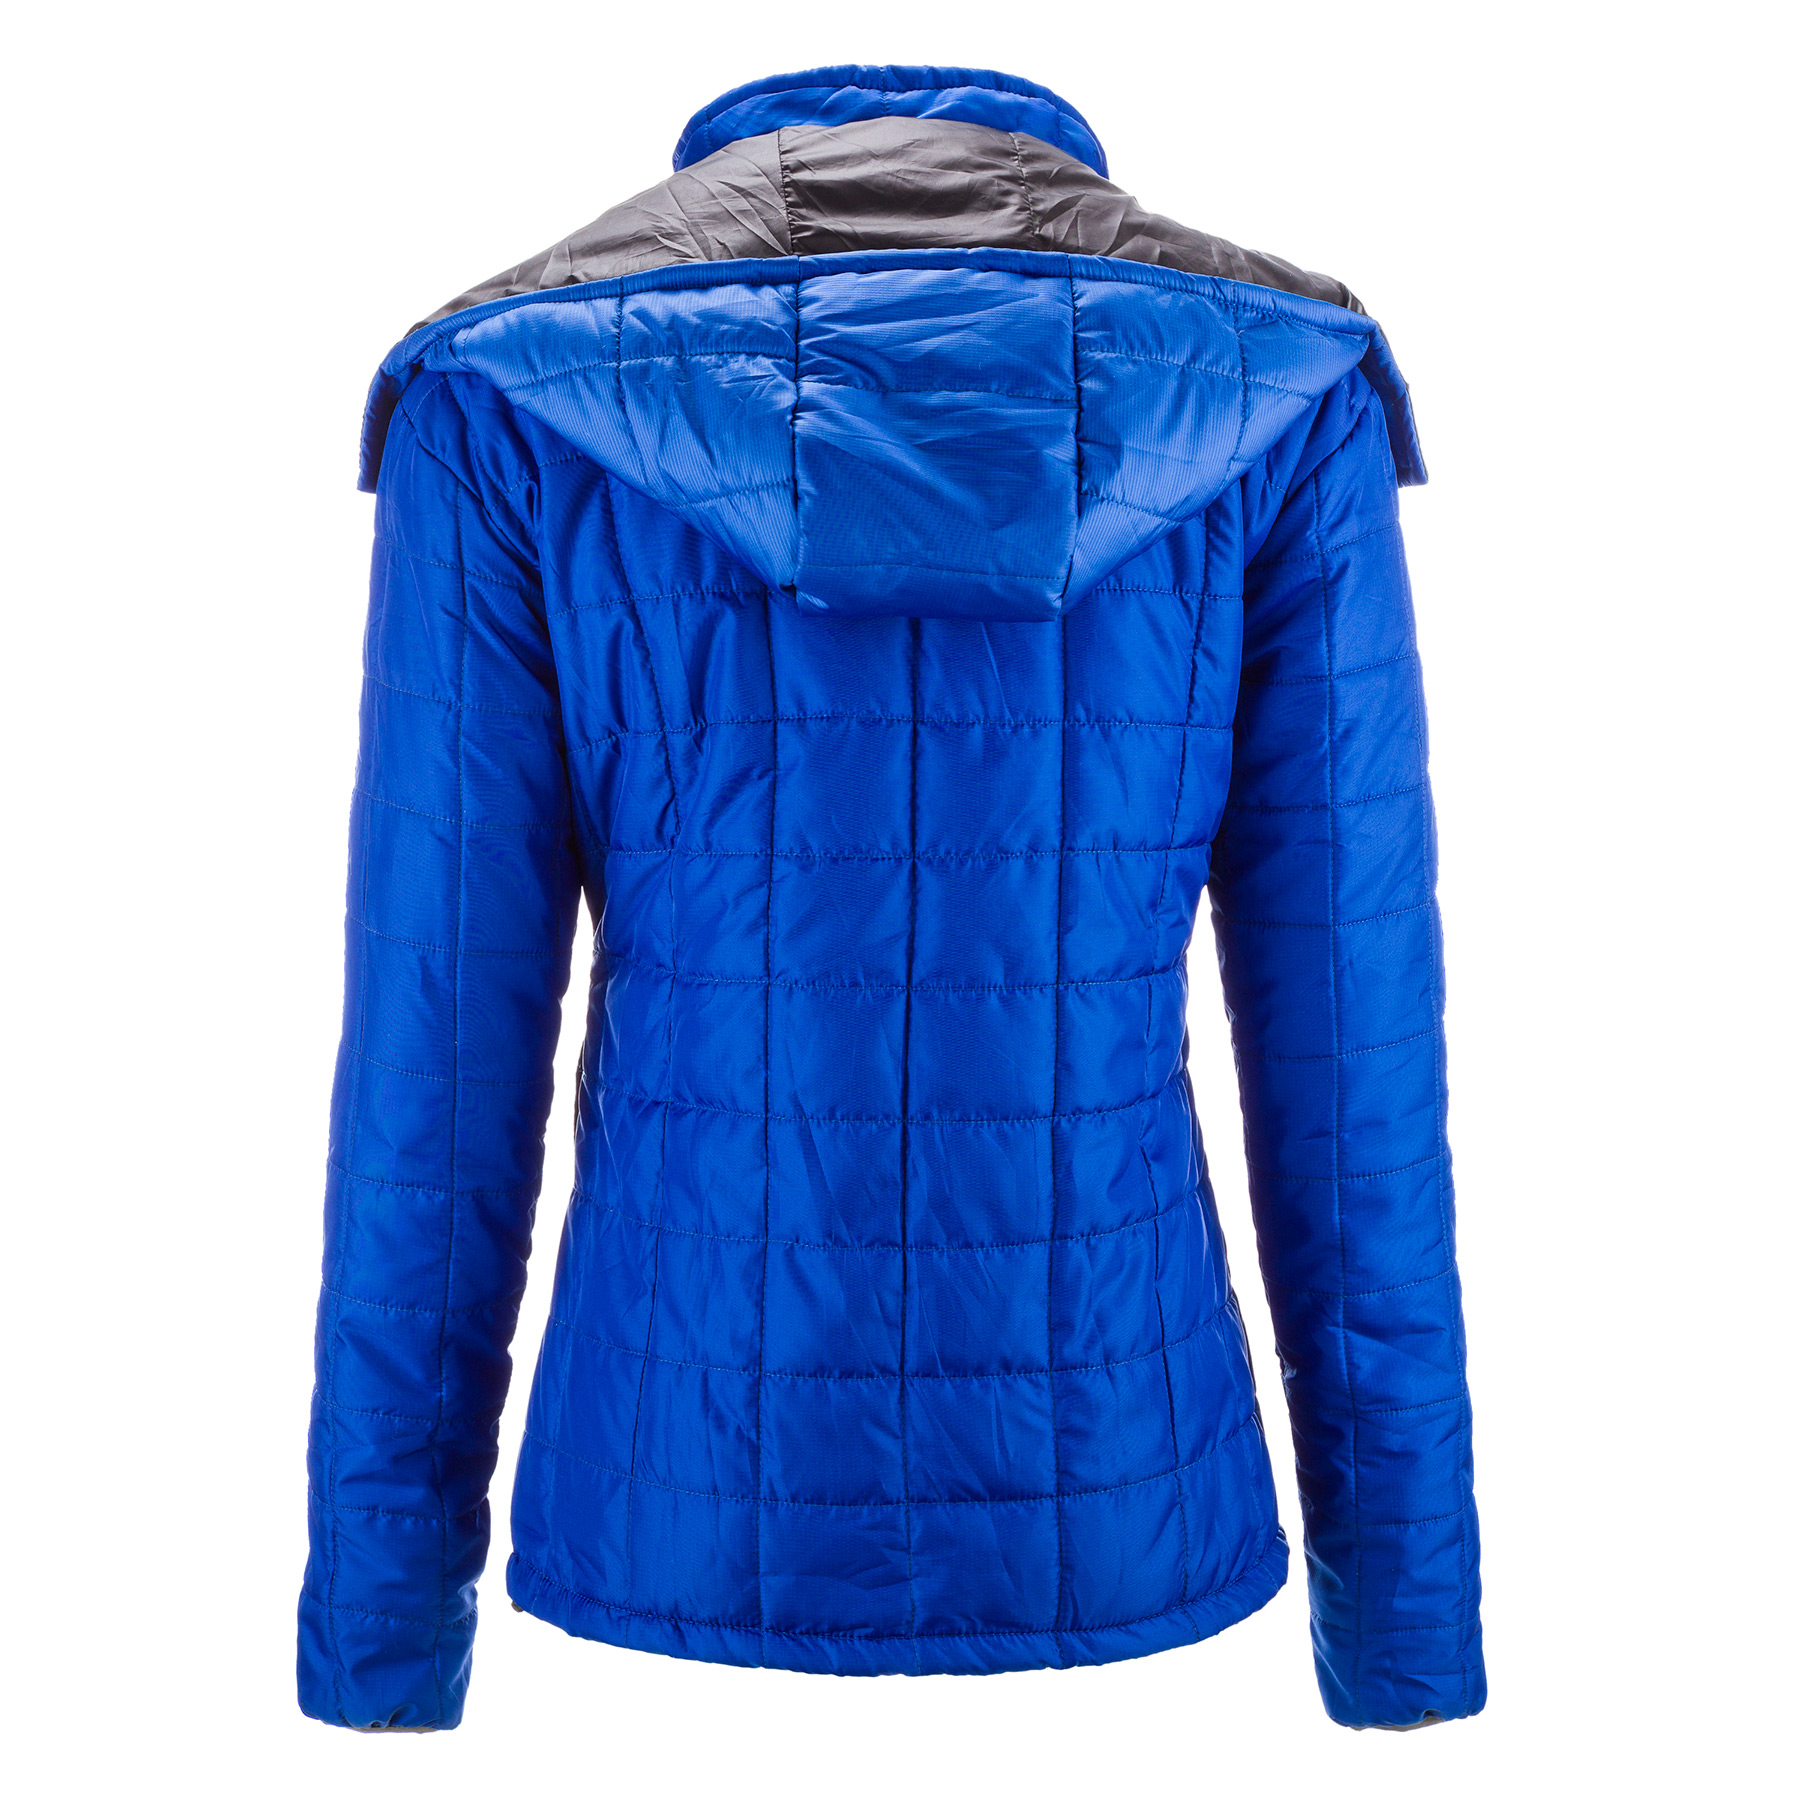 The Pumori Women S Insulated Jacket 200 Gsm Royal Blue